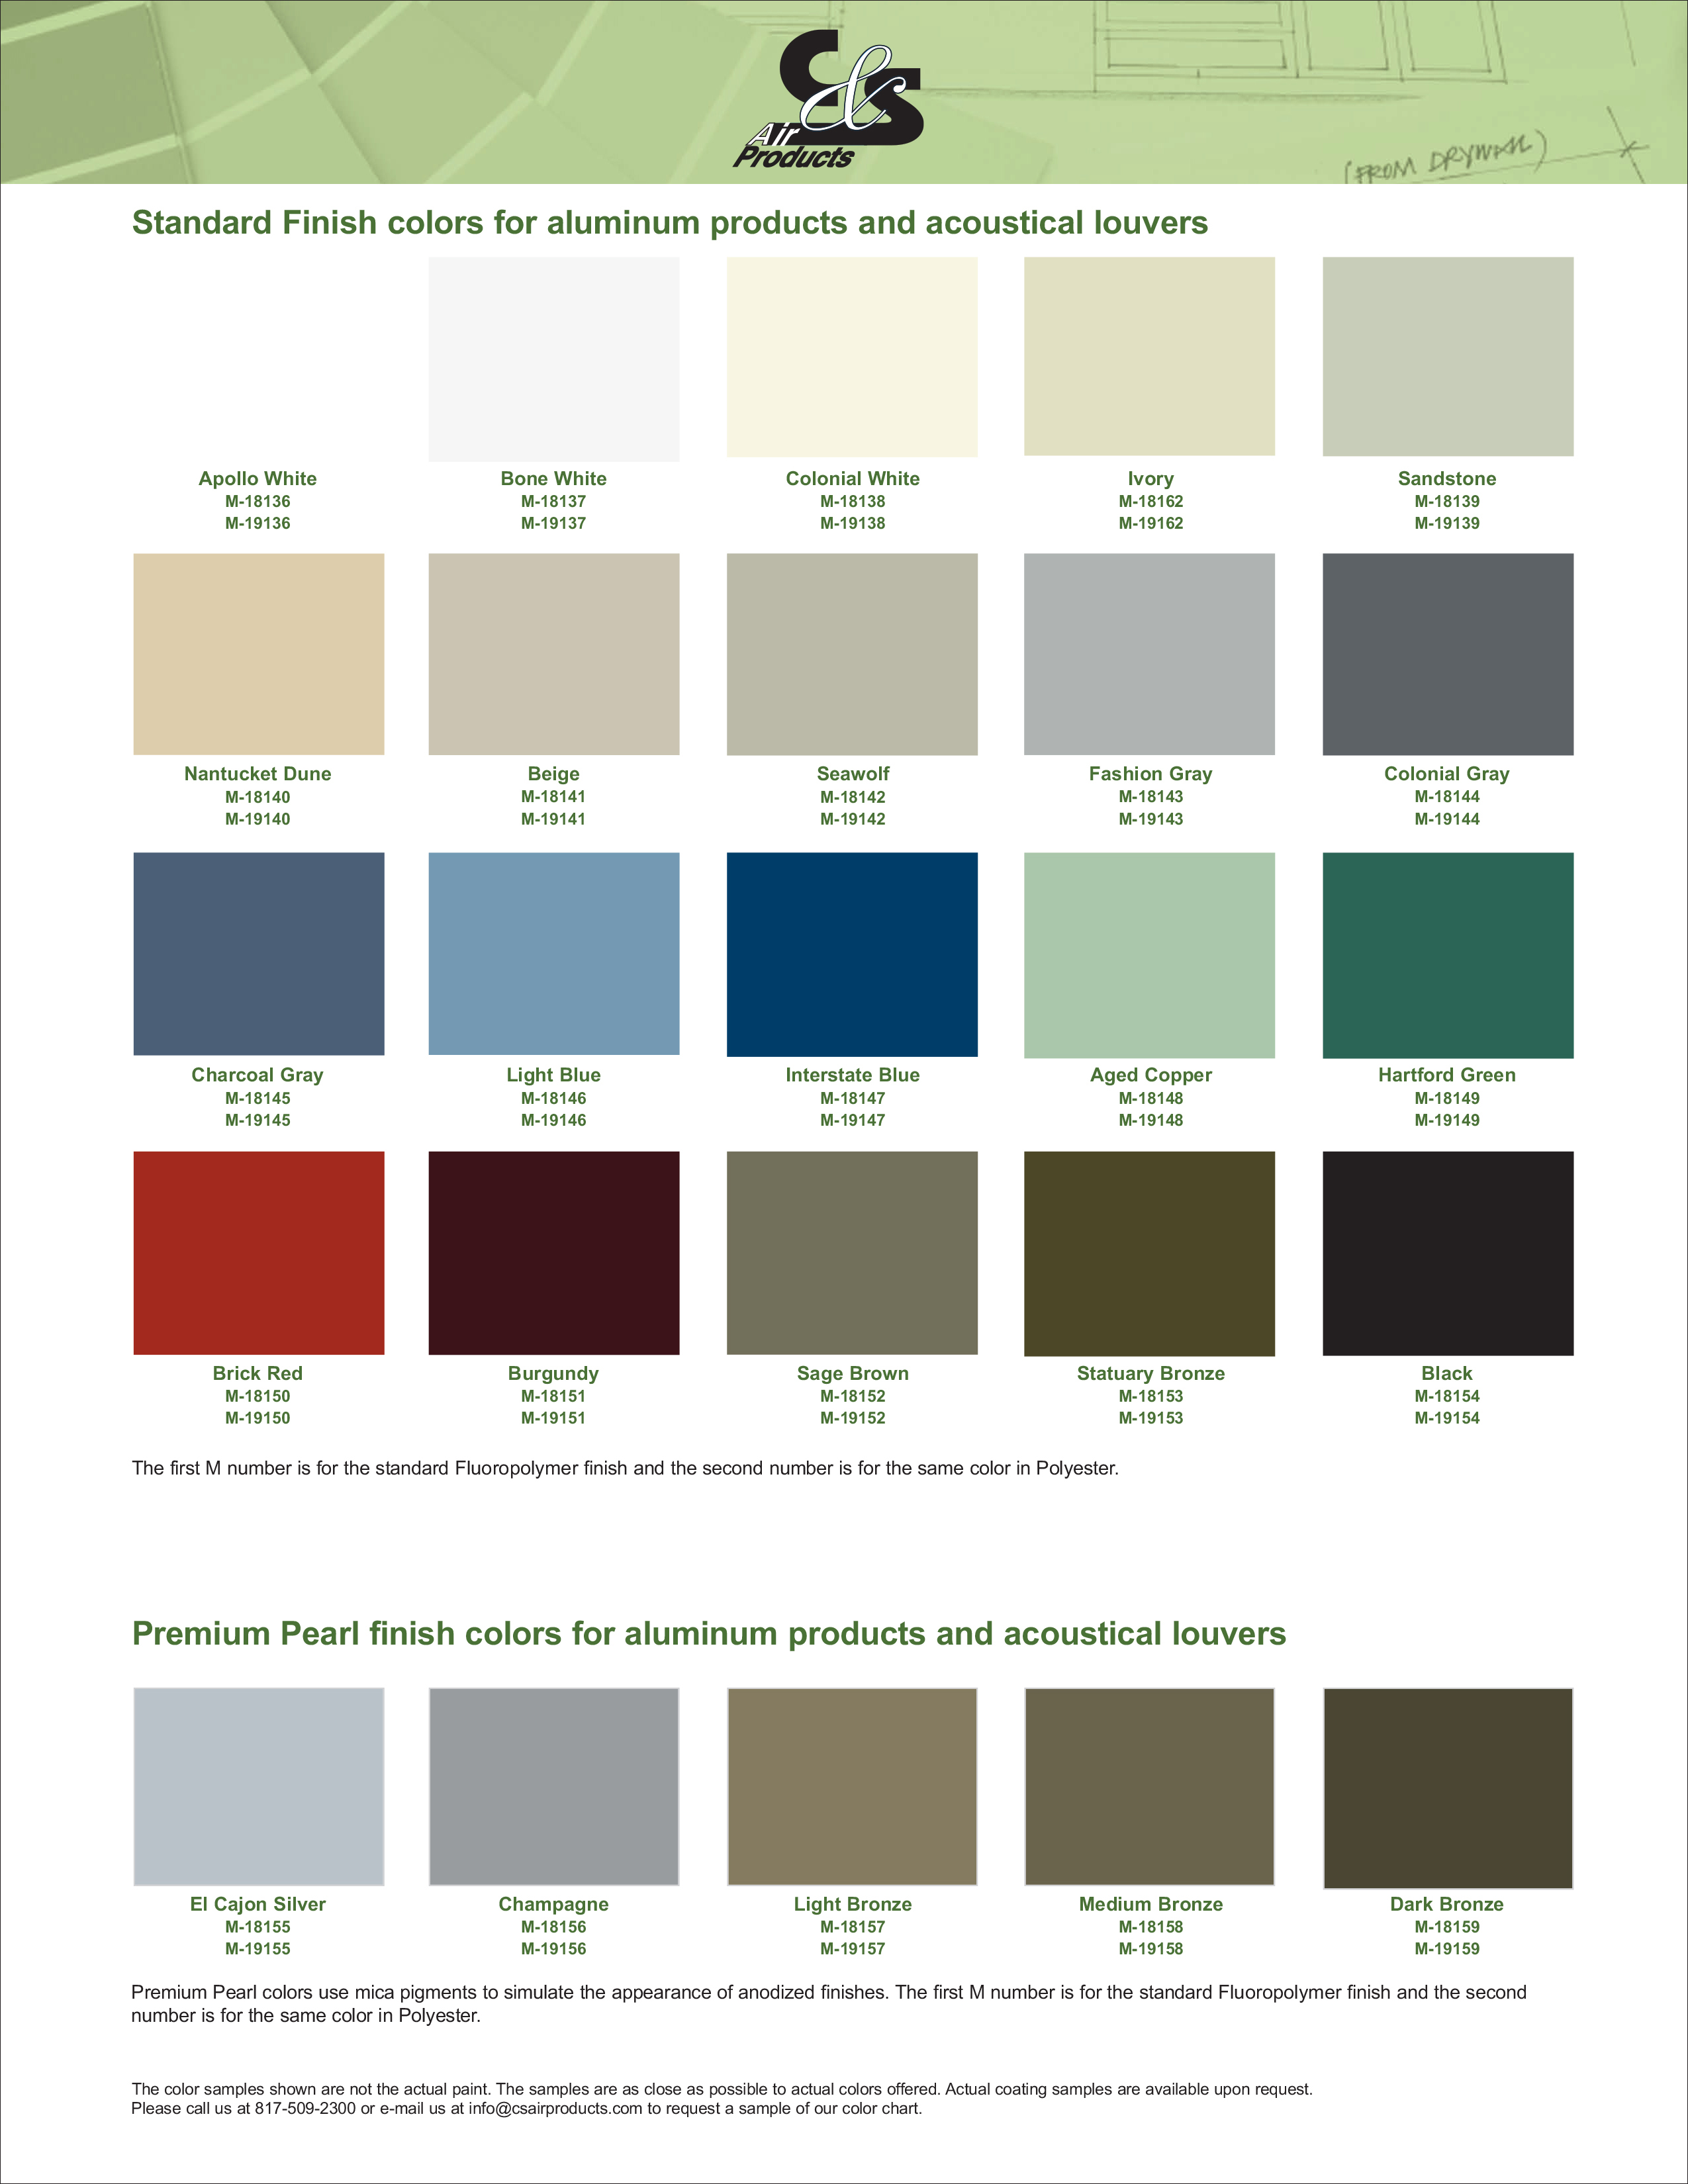 Standard Finish Colors For Aluminum Products And Acoustical Louvers